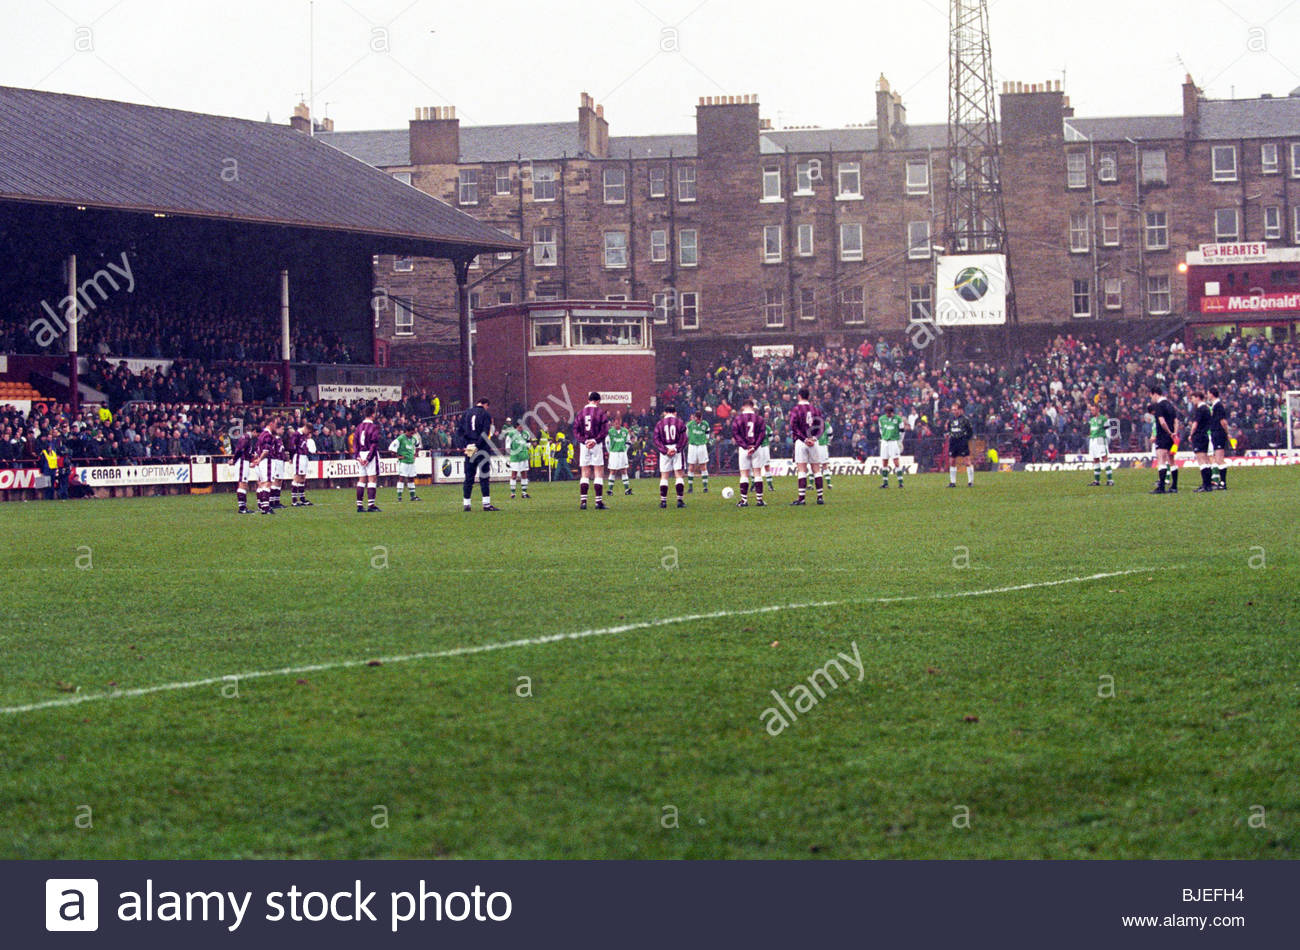 15/03/97 BELL'S PREMIER DIVISION HEARTS V HIBS (1-0) TYNECASTLE - EDINBURGH Both sets of players observe a minute's - Stock Image